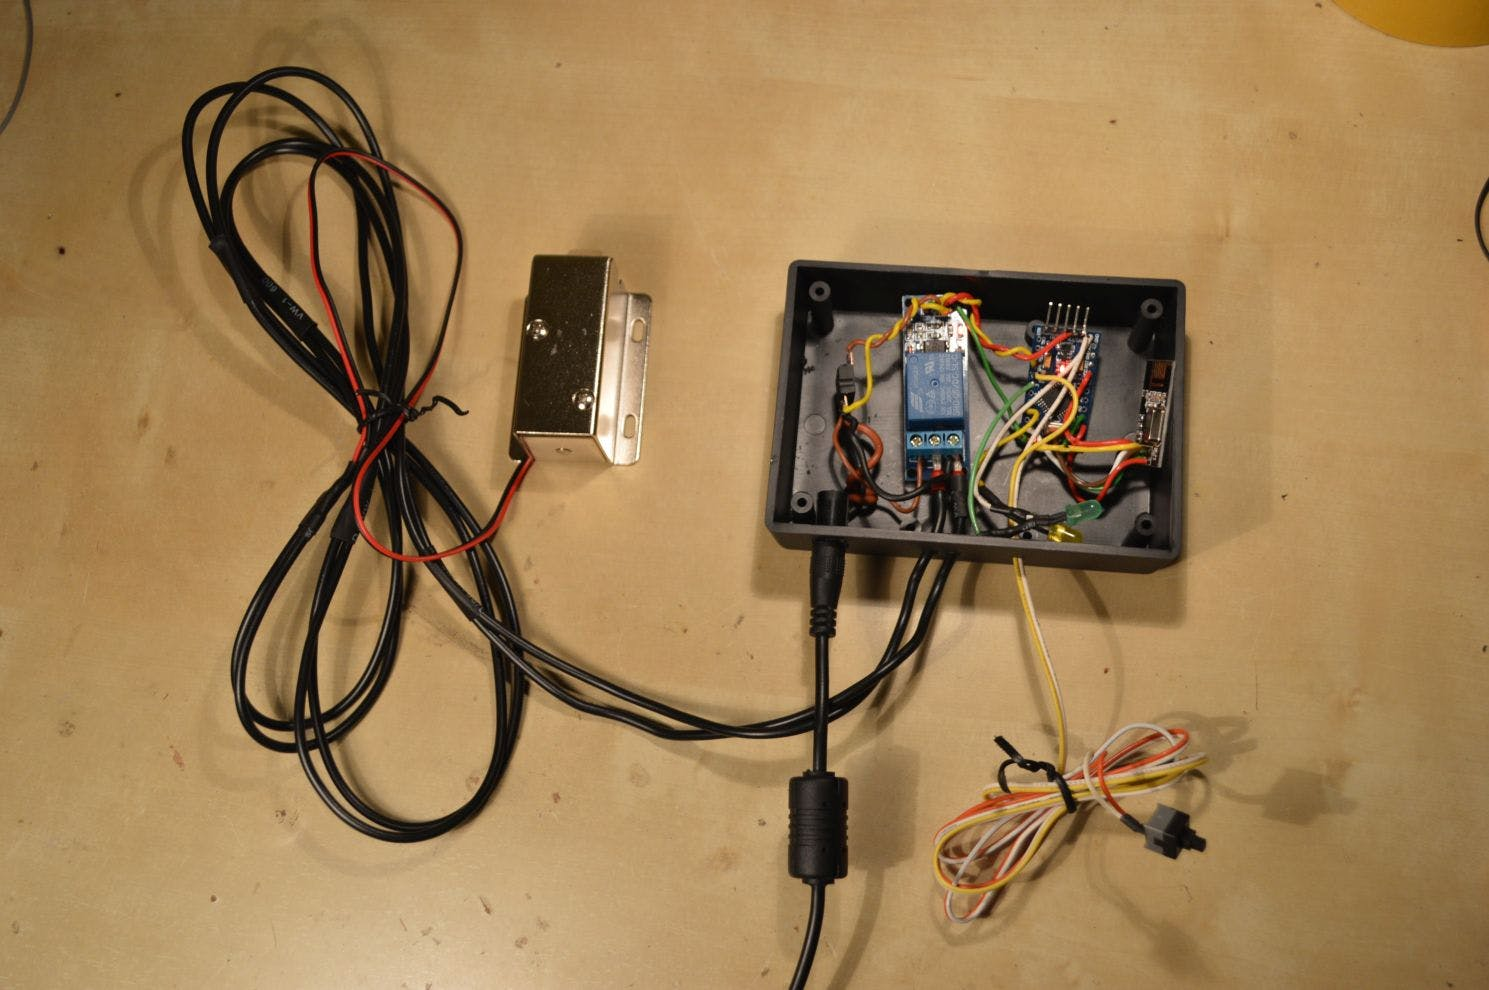 Some wires weren't soldered when this photo was taken, and the LEDs are not properly inserted - but all the rest is there.